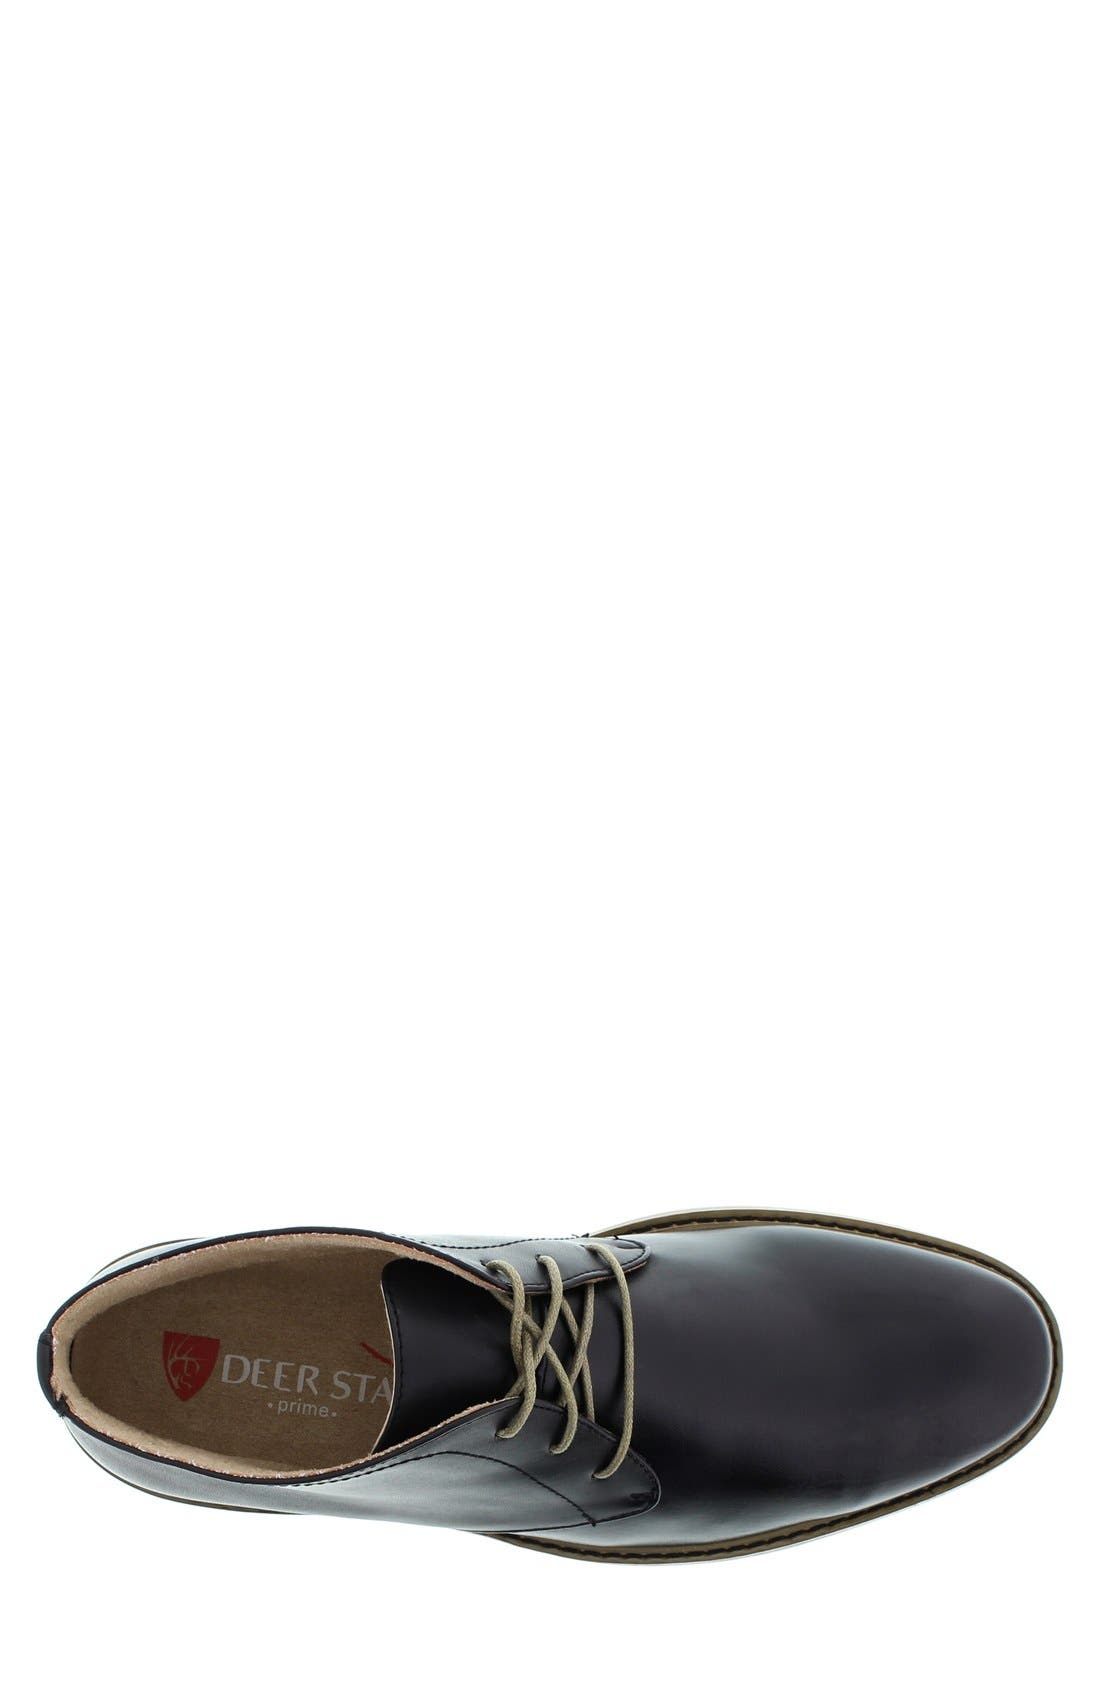 DEER STAGS,                             'Seattle' Leather Chukka Boot,                             Alternate thumbnail 3, color,                             001